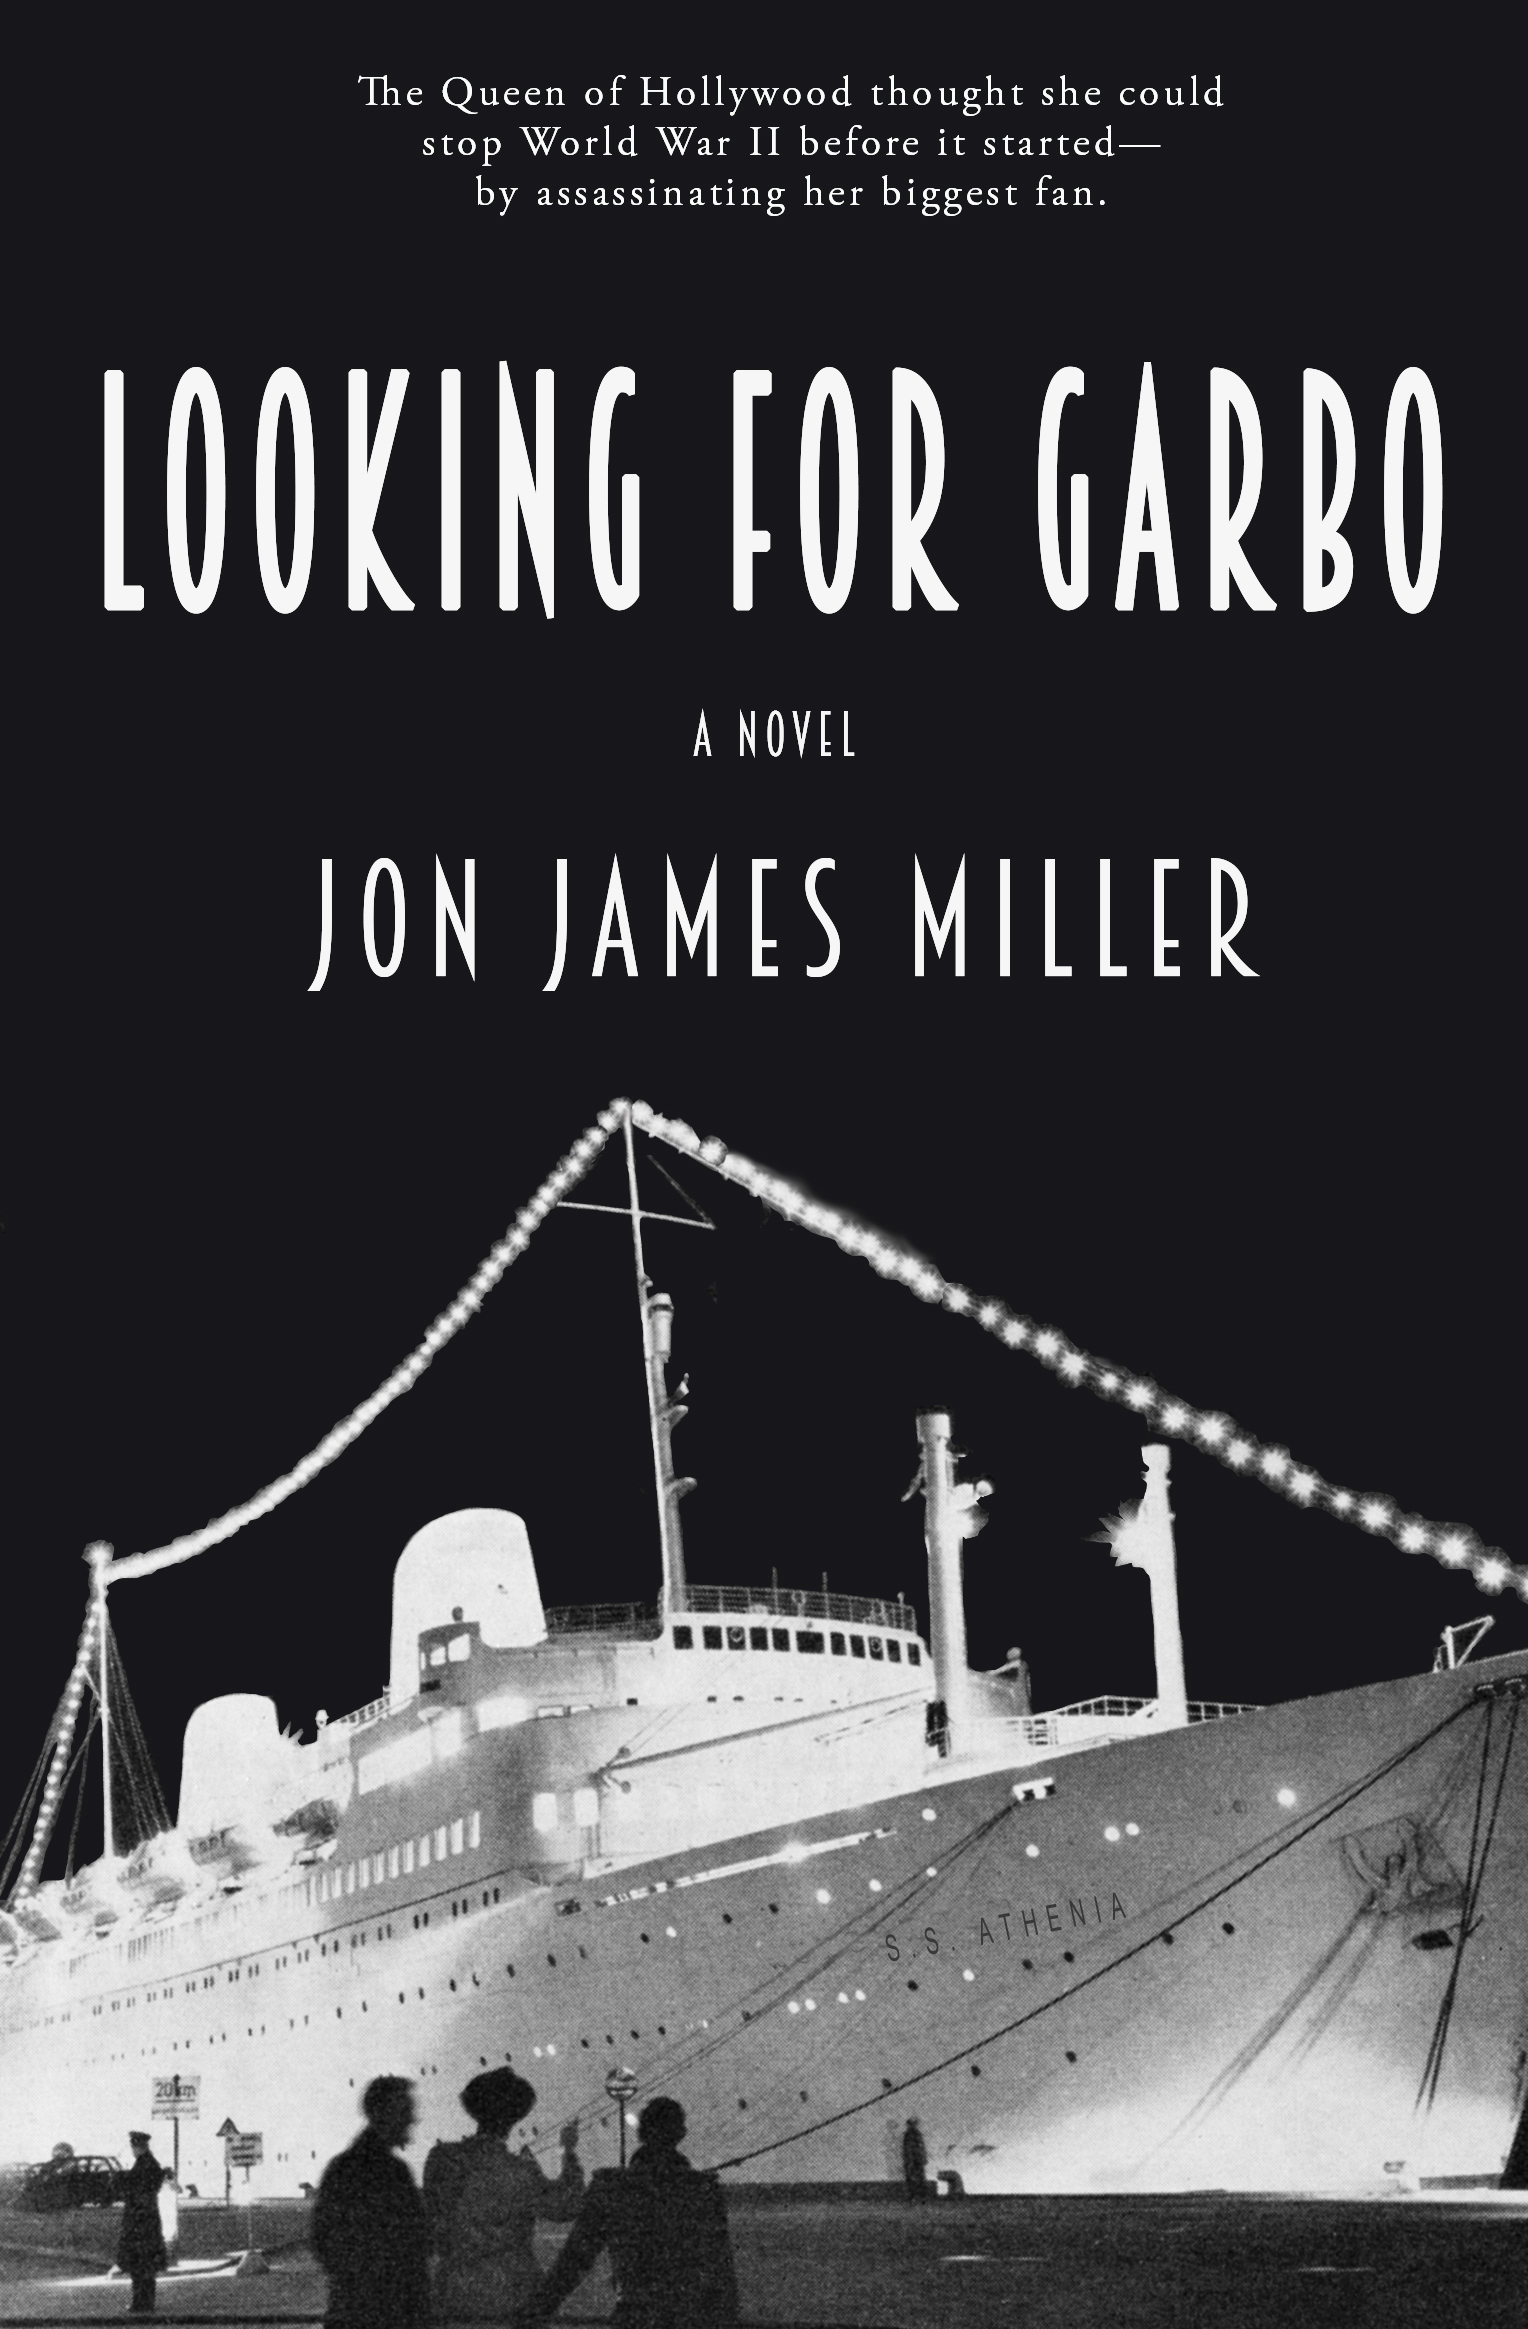 Looking for Garbo